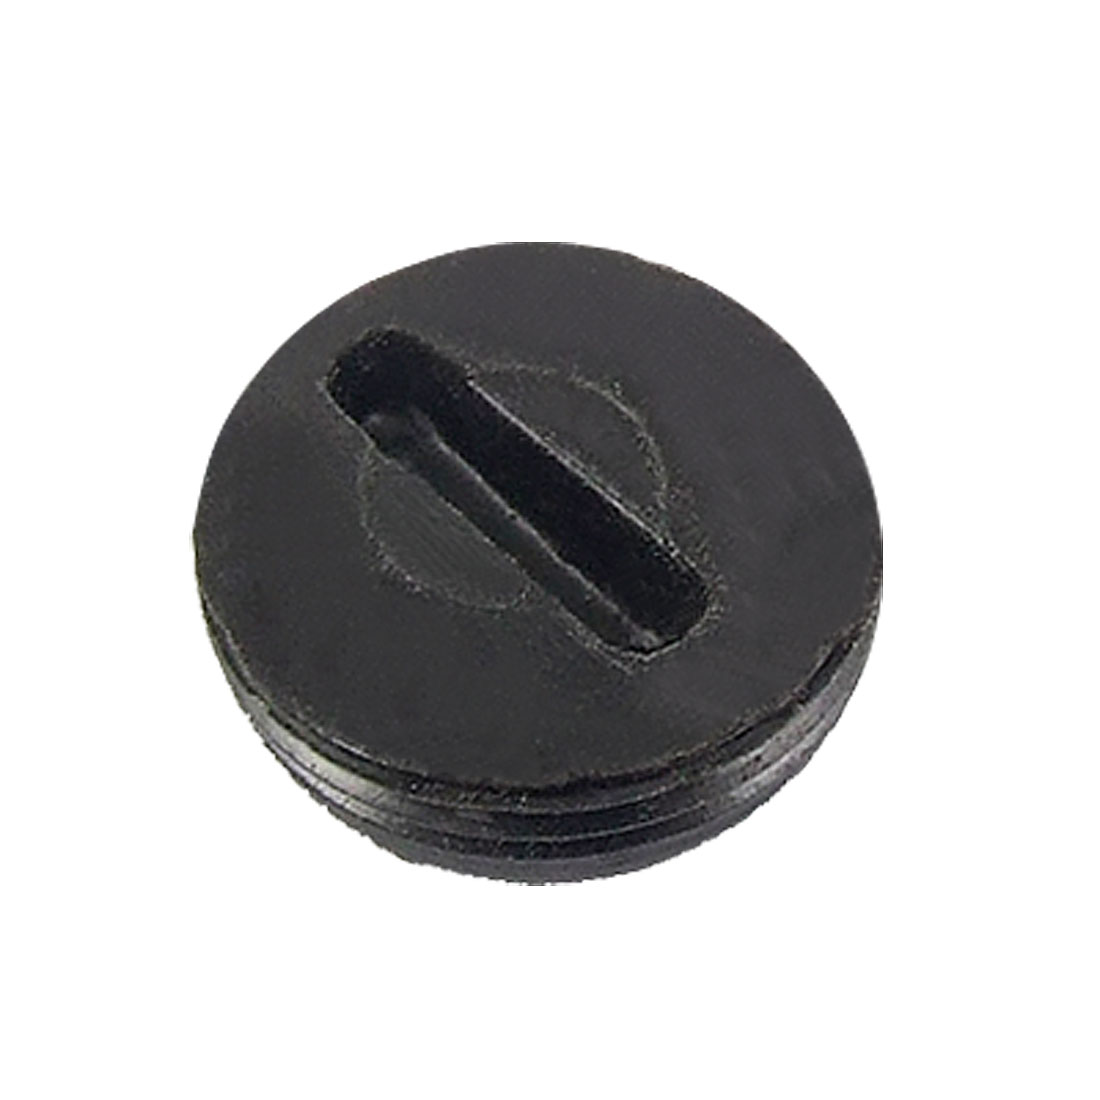 20 Pcs 13.7mm Diameter Black Carbon Brush Holder Cap for Motor